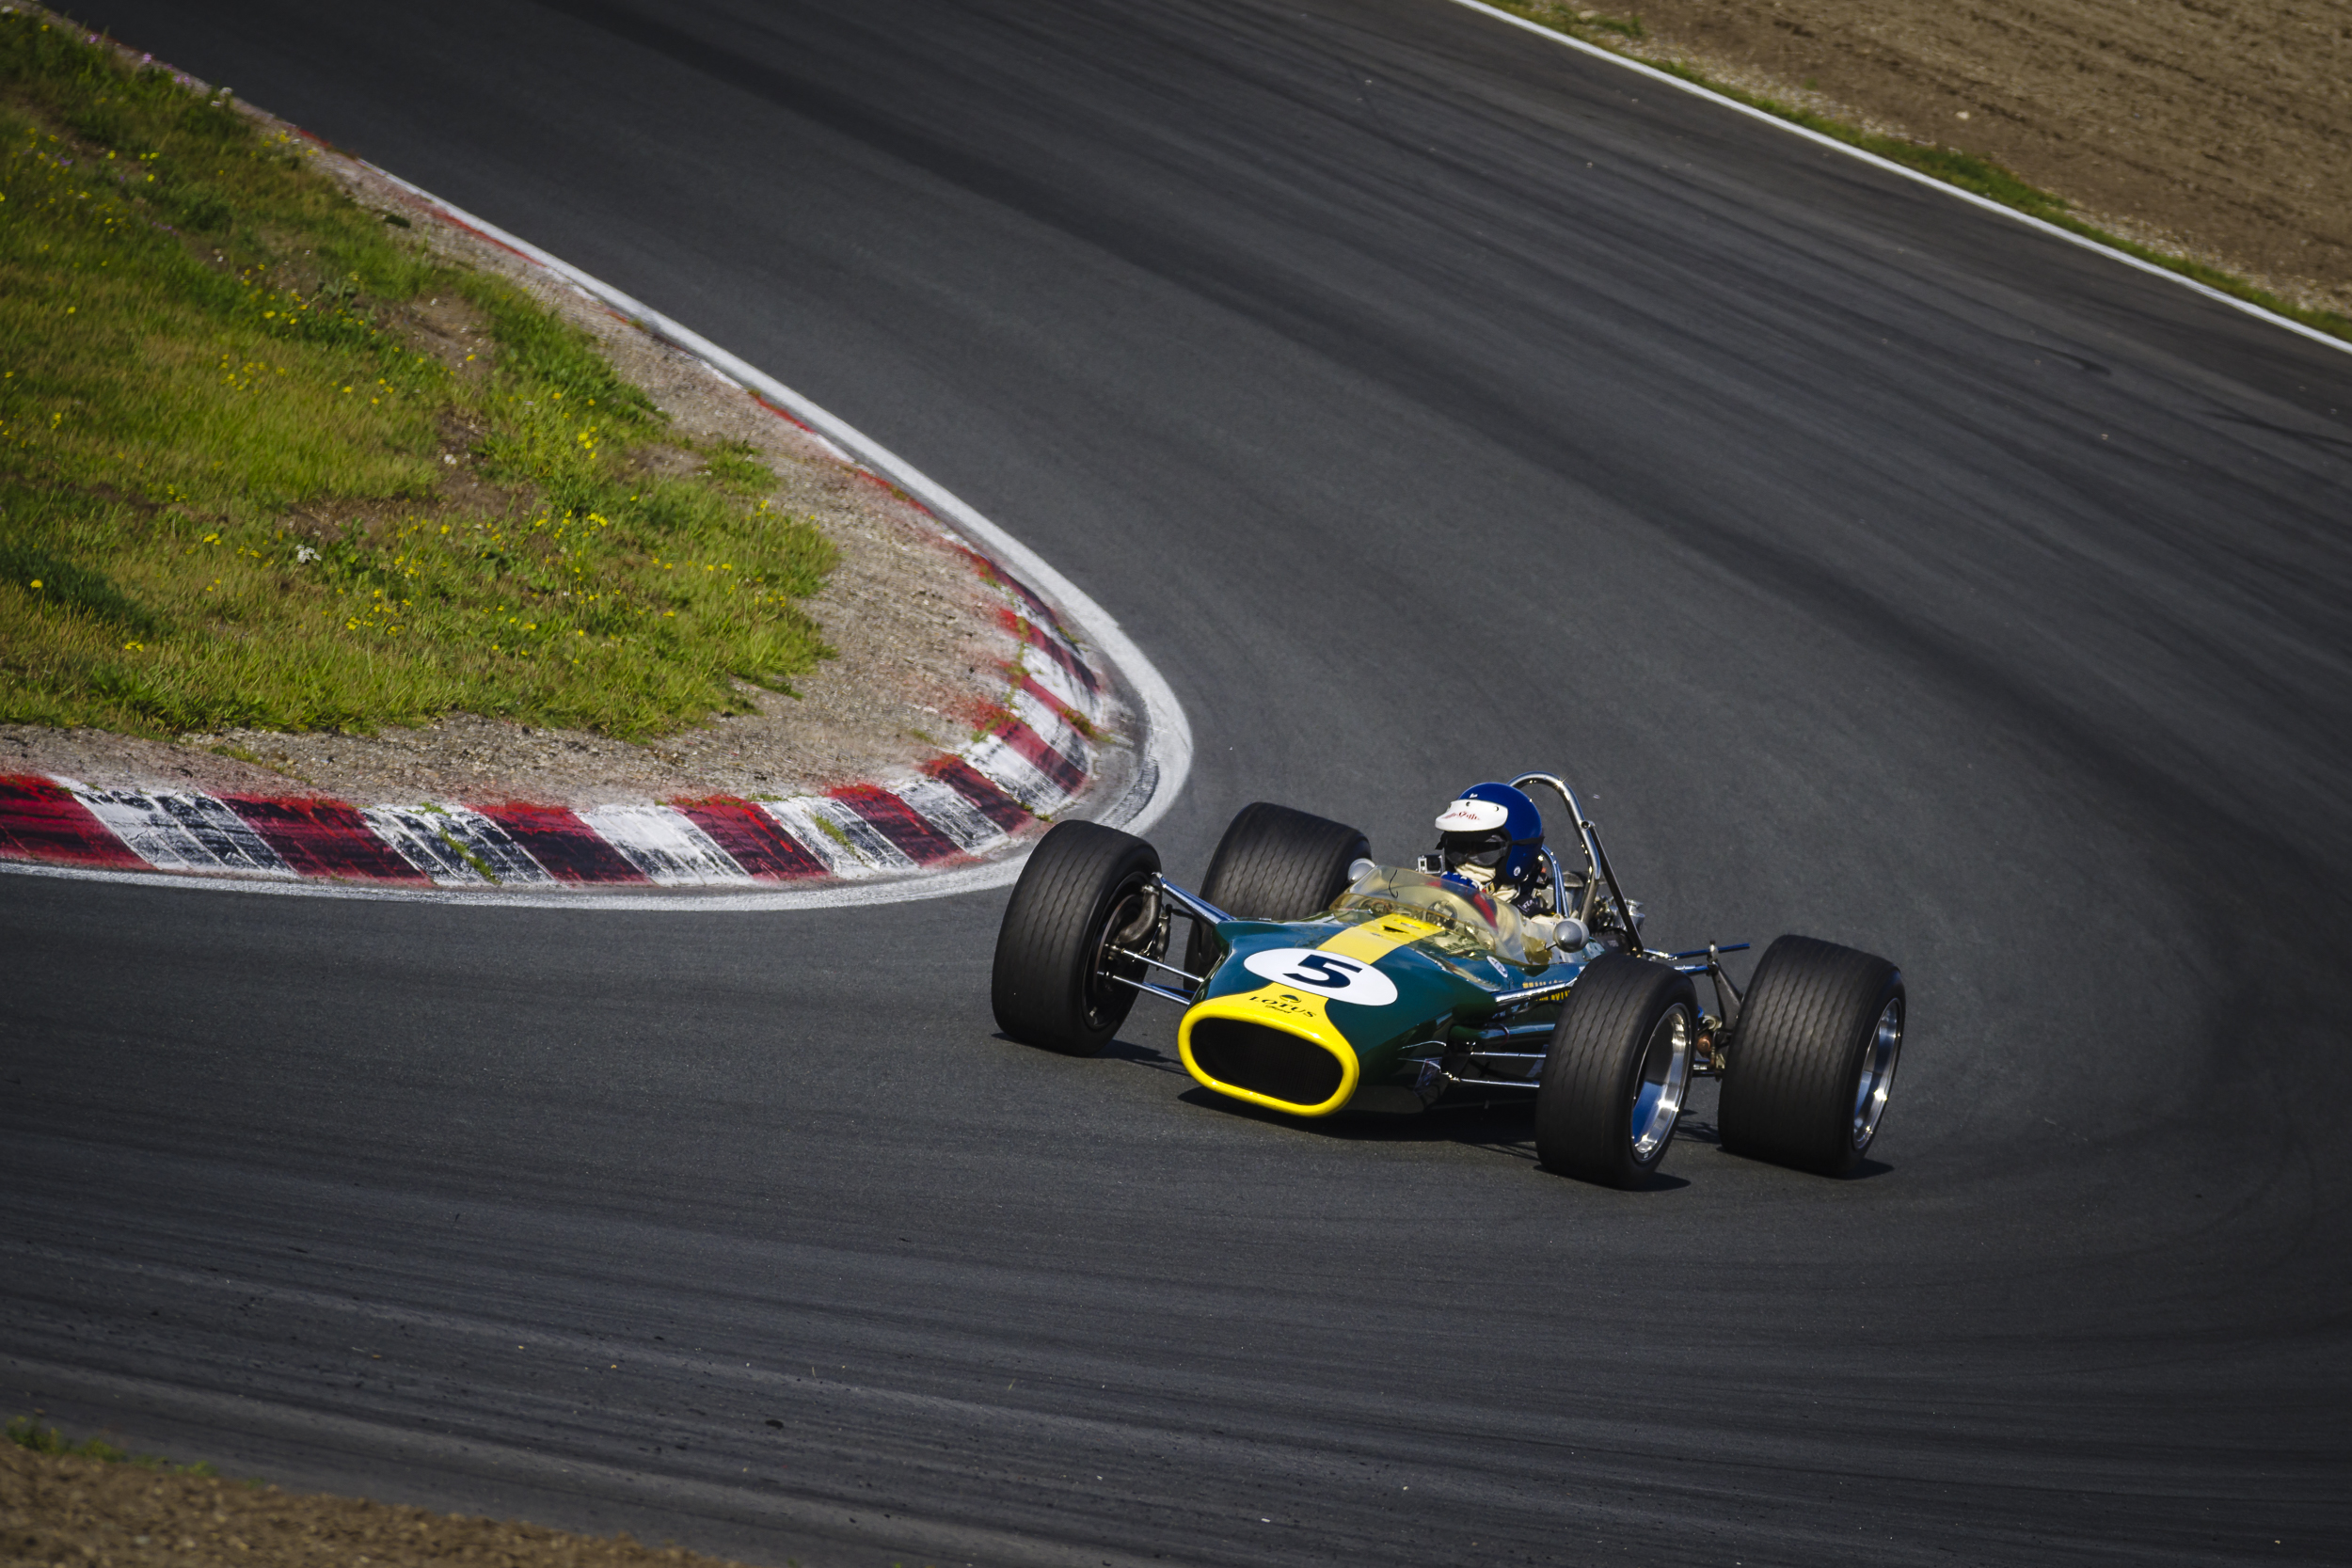 De race winnende Lotus-Cosworth uit 1967 van Jim Clark